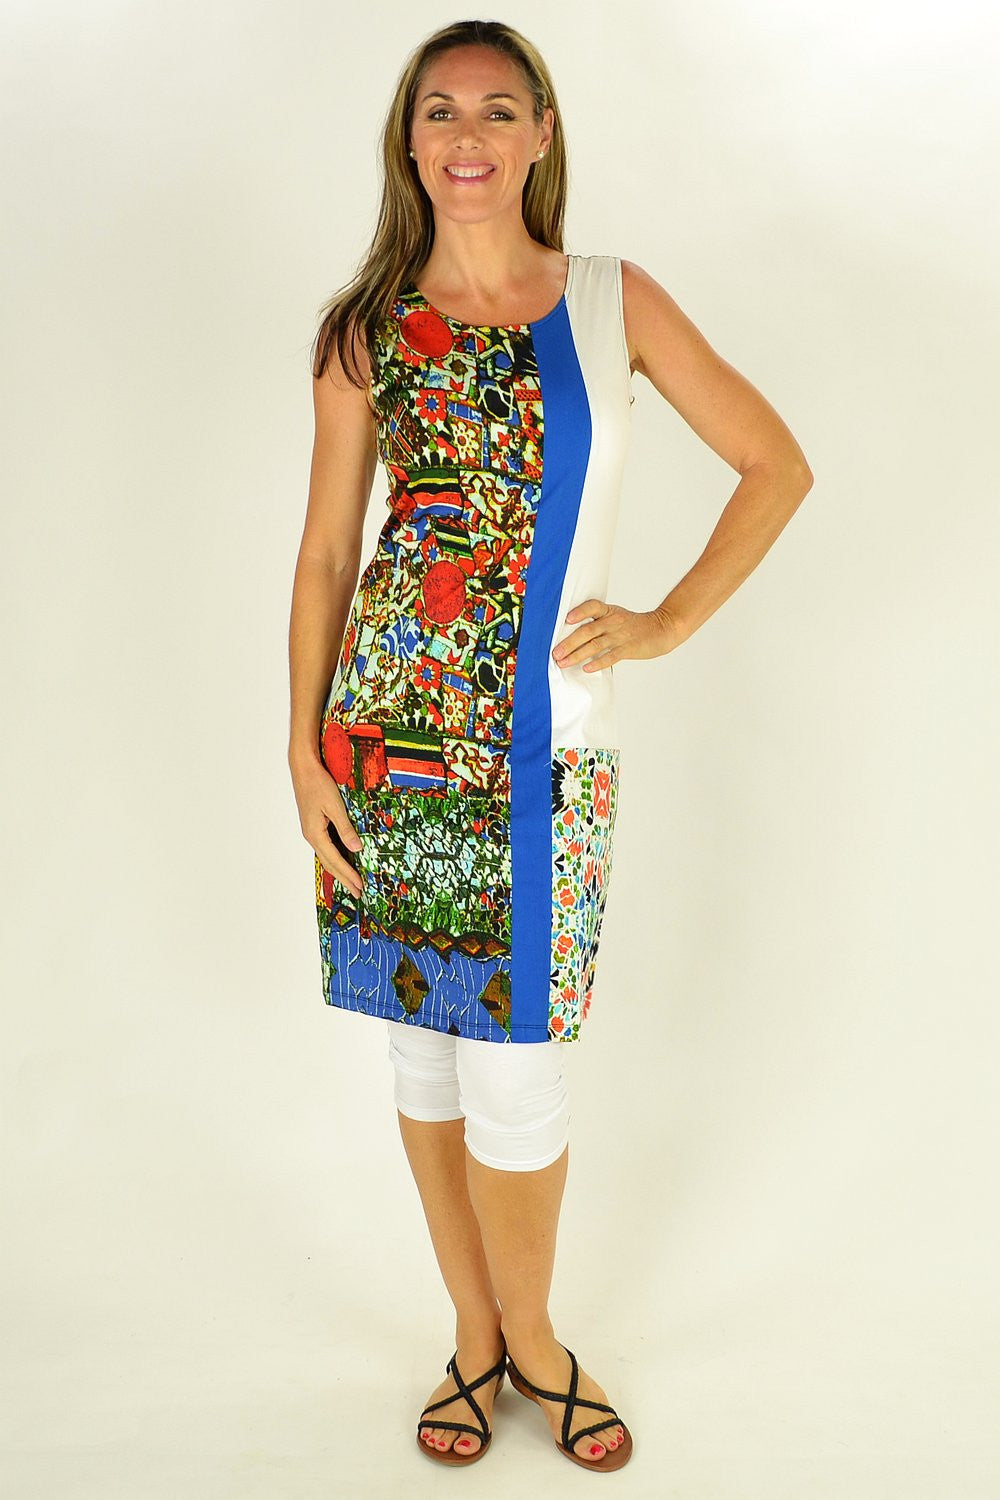 Abstract Garden Tunic | I Love Tunics | Tunic Tops | Tunic Dresses | Women's Tops | Plus Size Australia | Mature Fashion